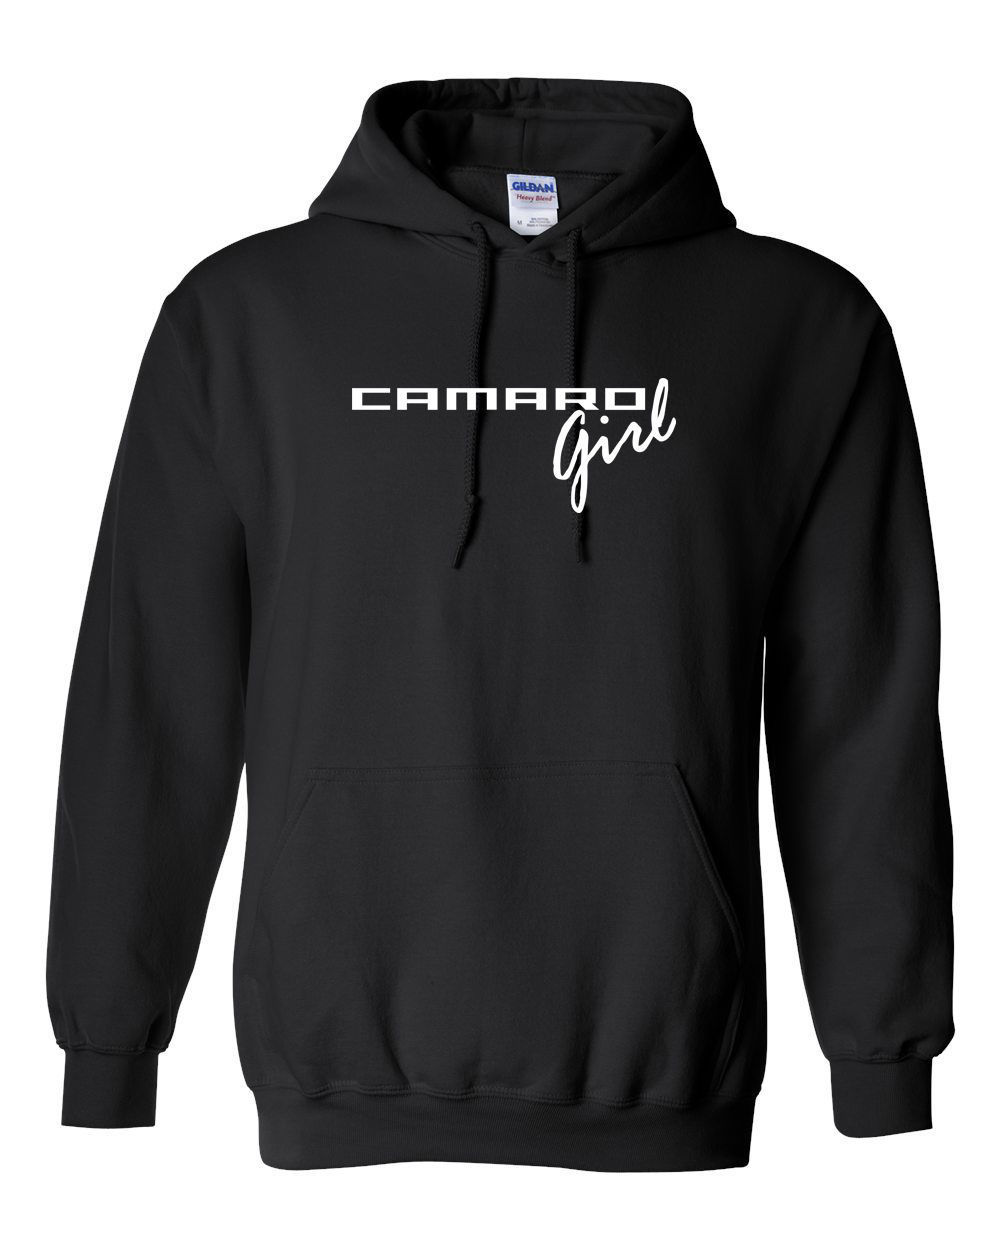 Camaro Girl Hooded Sweatshirt